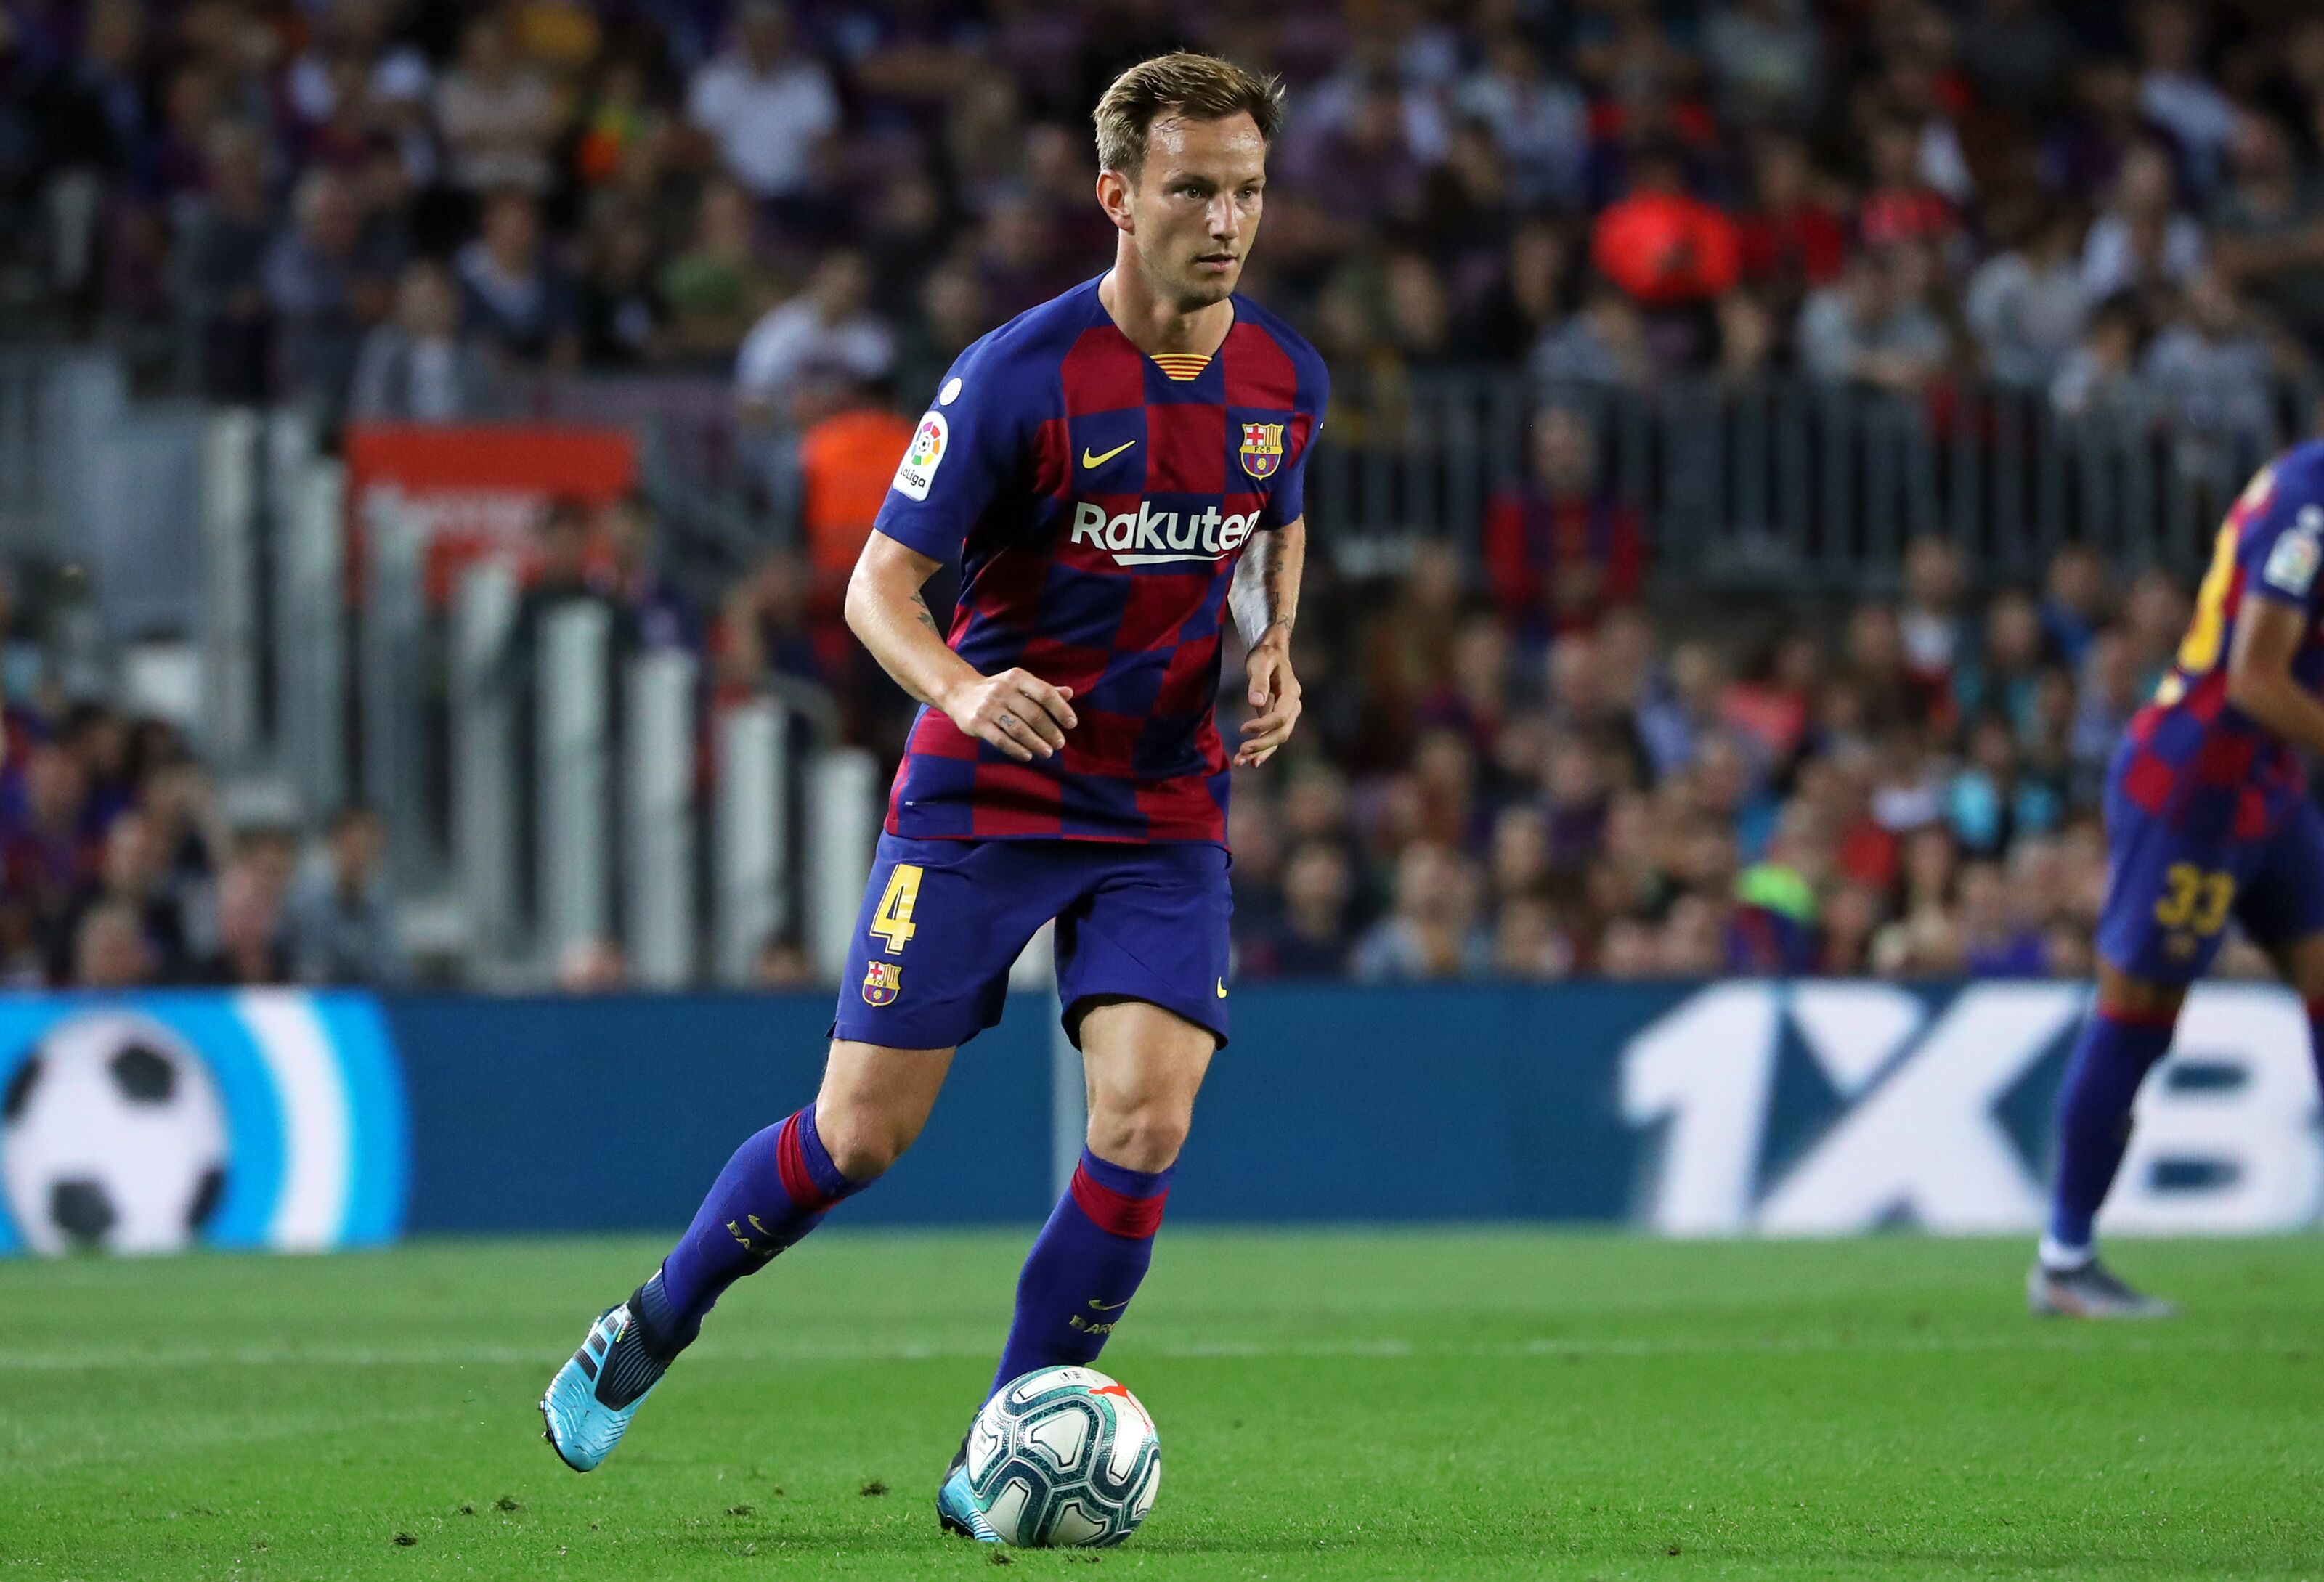 Barcelona superstar close to parting ways with the club